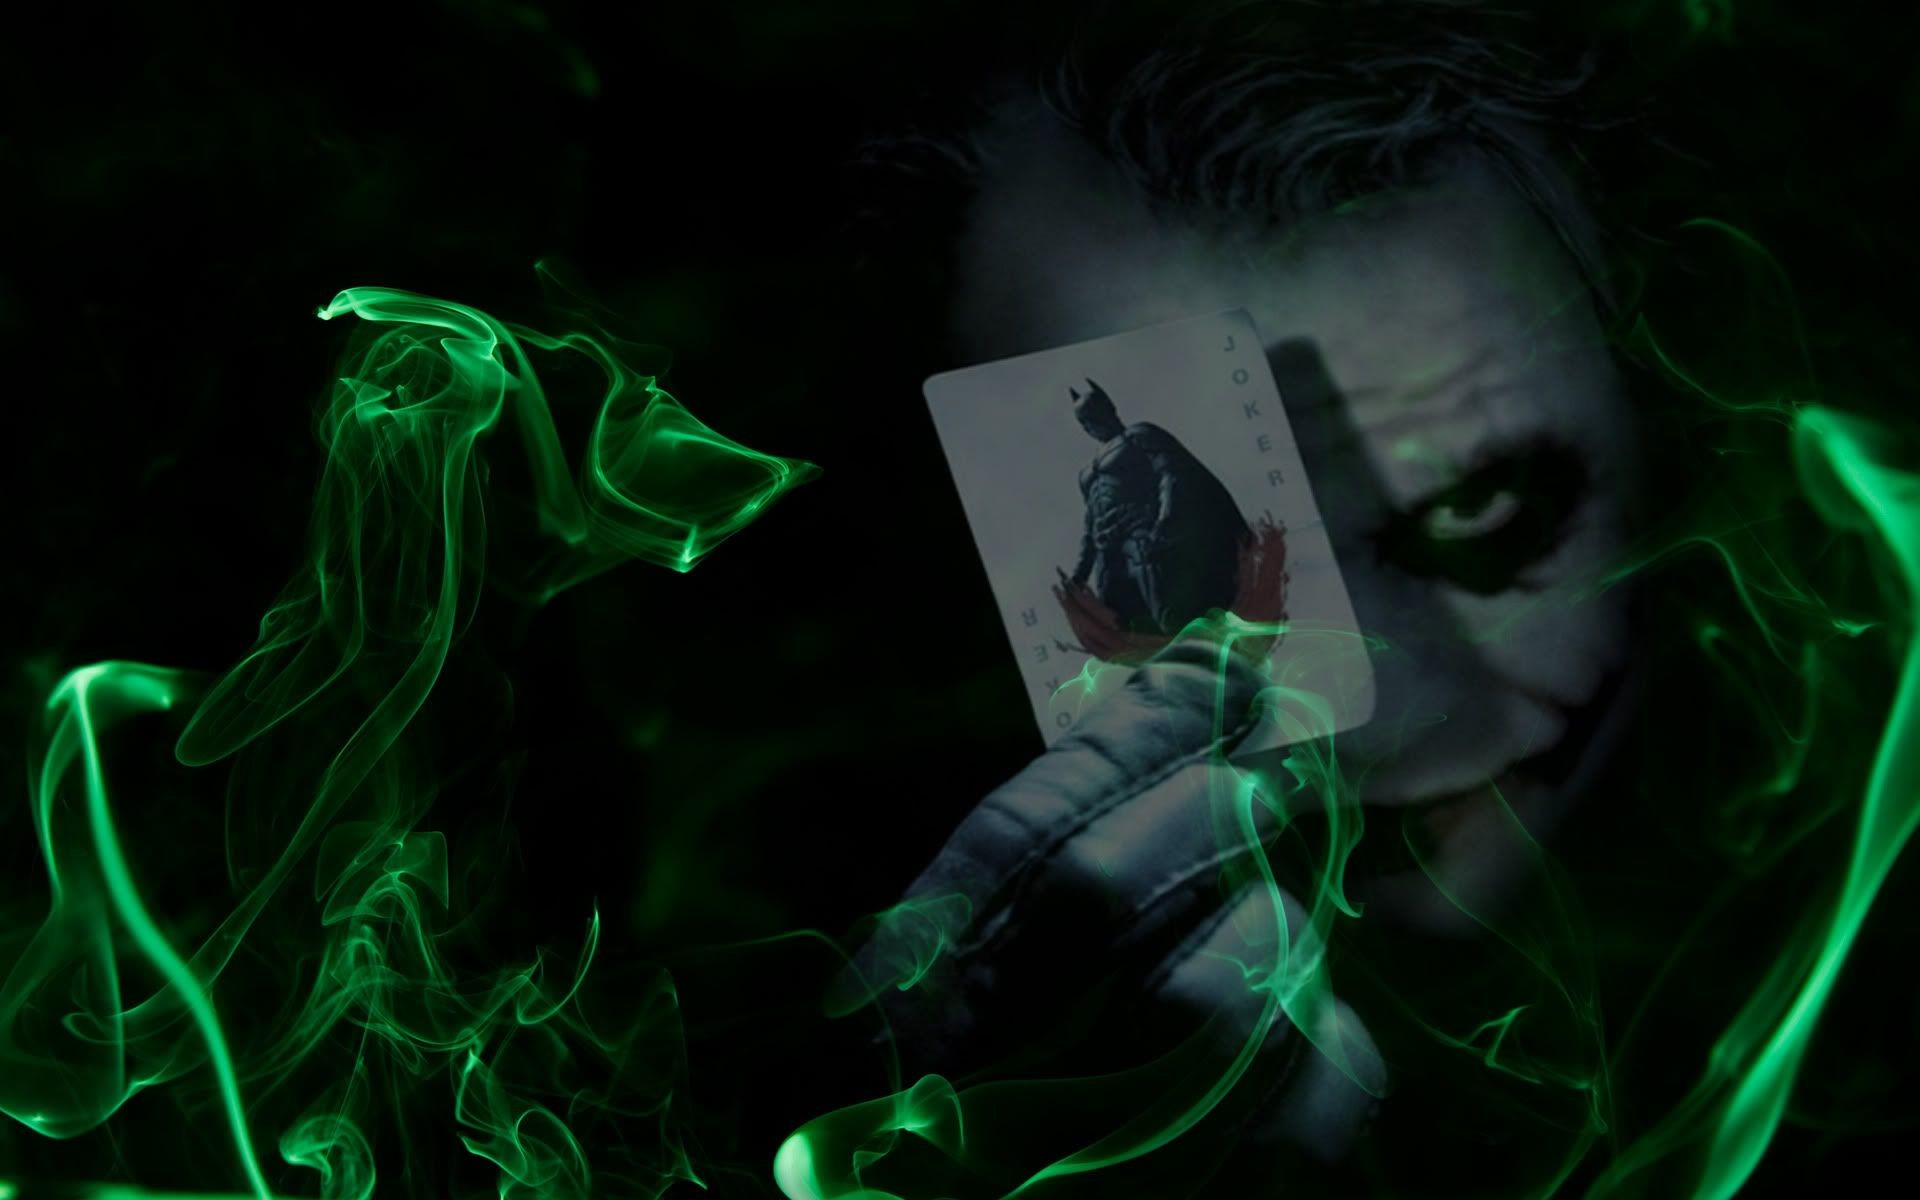 Dark Knight Hd Wallpapers For Android Best Hd Wallpaper